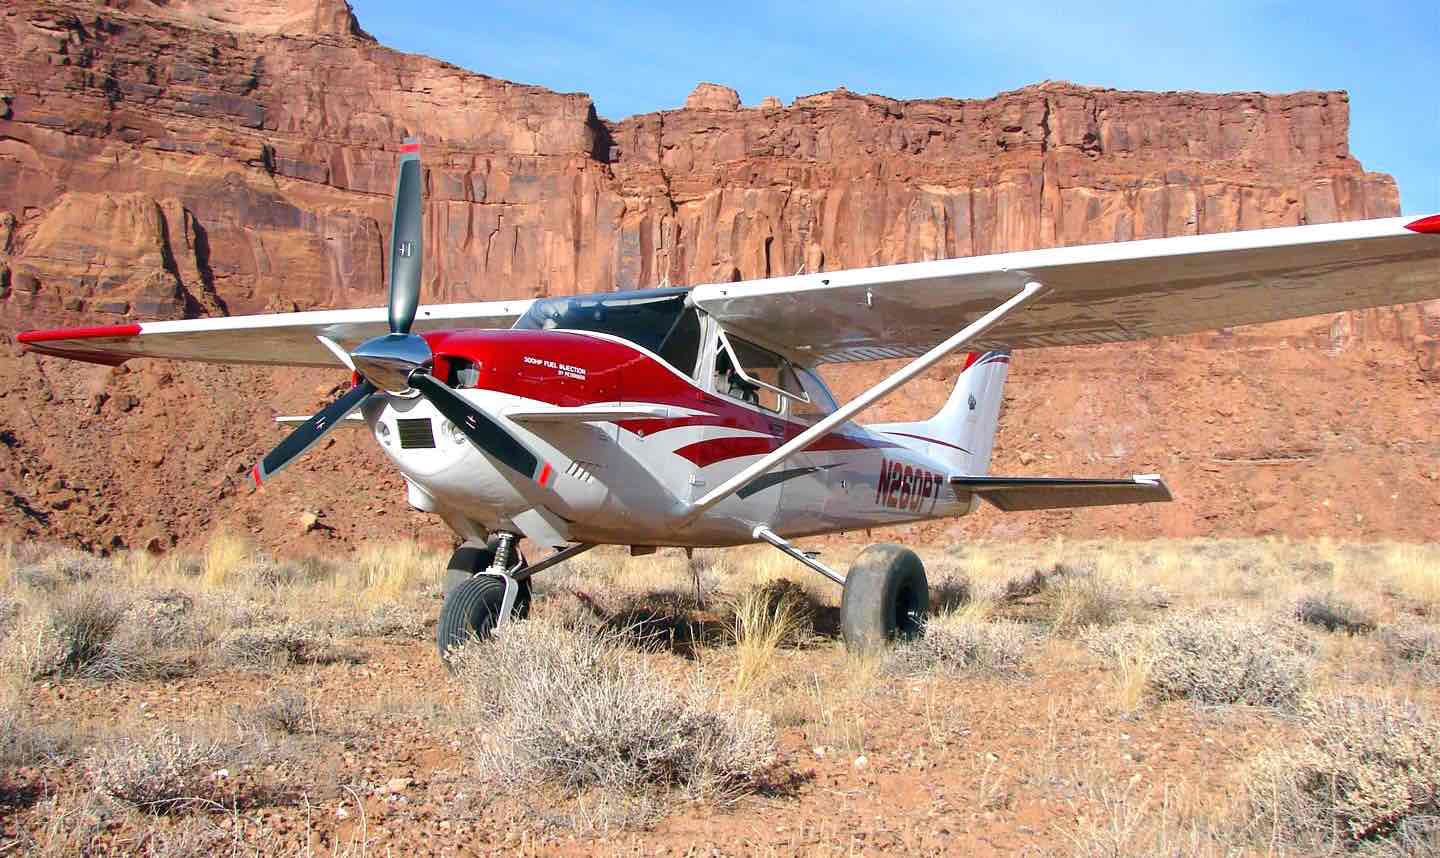 Landing at an aistrip in the San Rafael Swell of Southern Utah - King Katmai: Unbeatable Safety and Performance